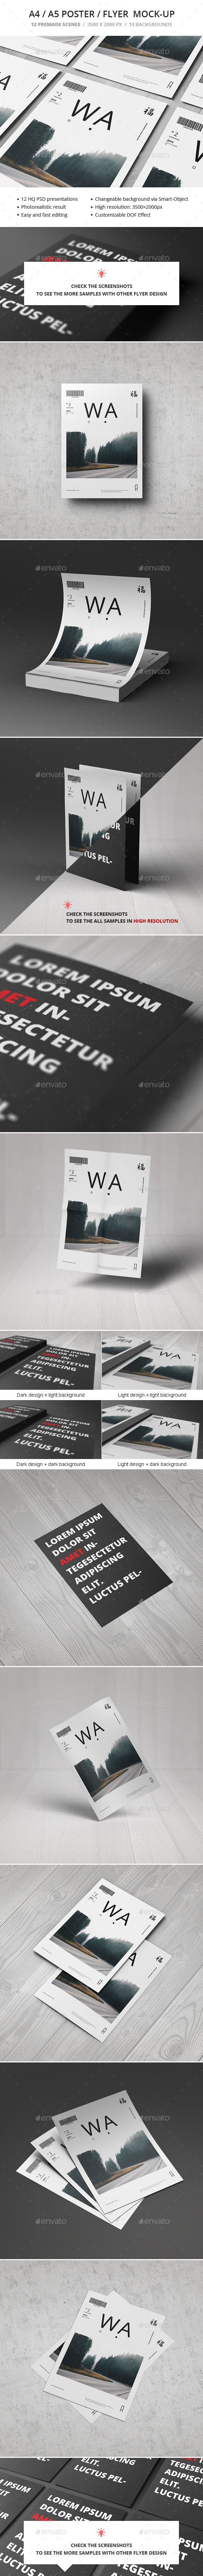 GraphicRiver A4 A5 Poster Flyer Mockup 10989492